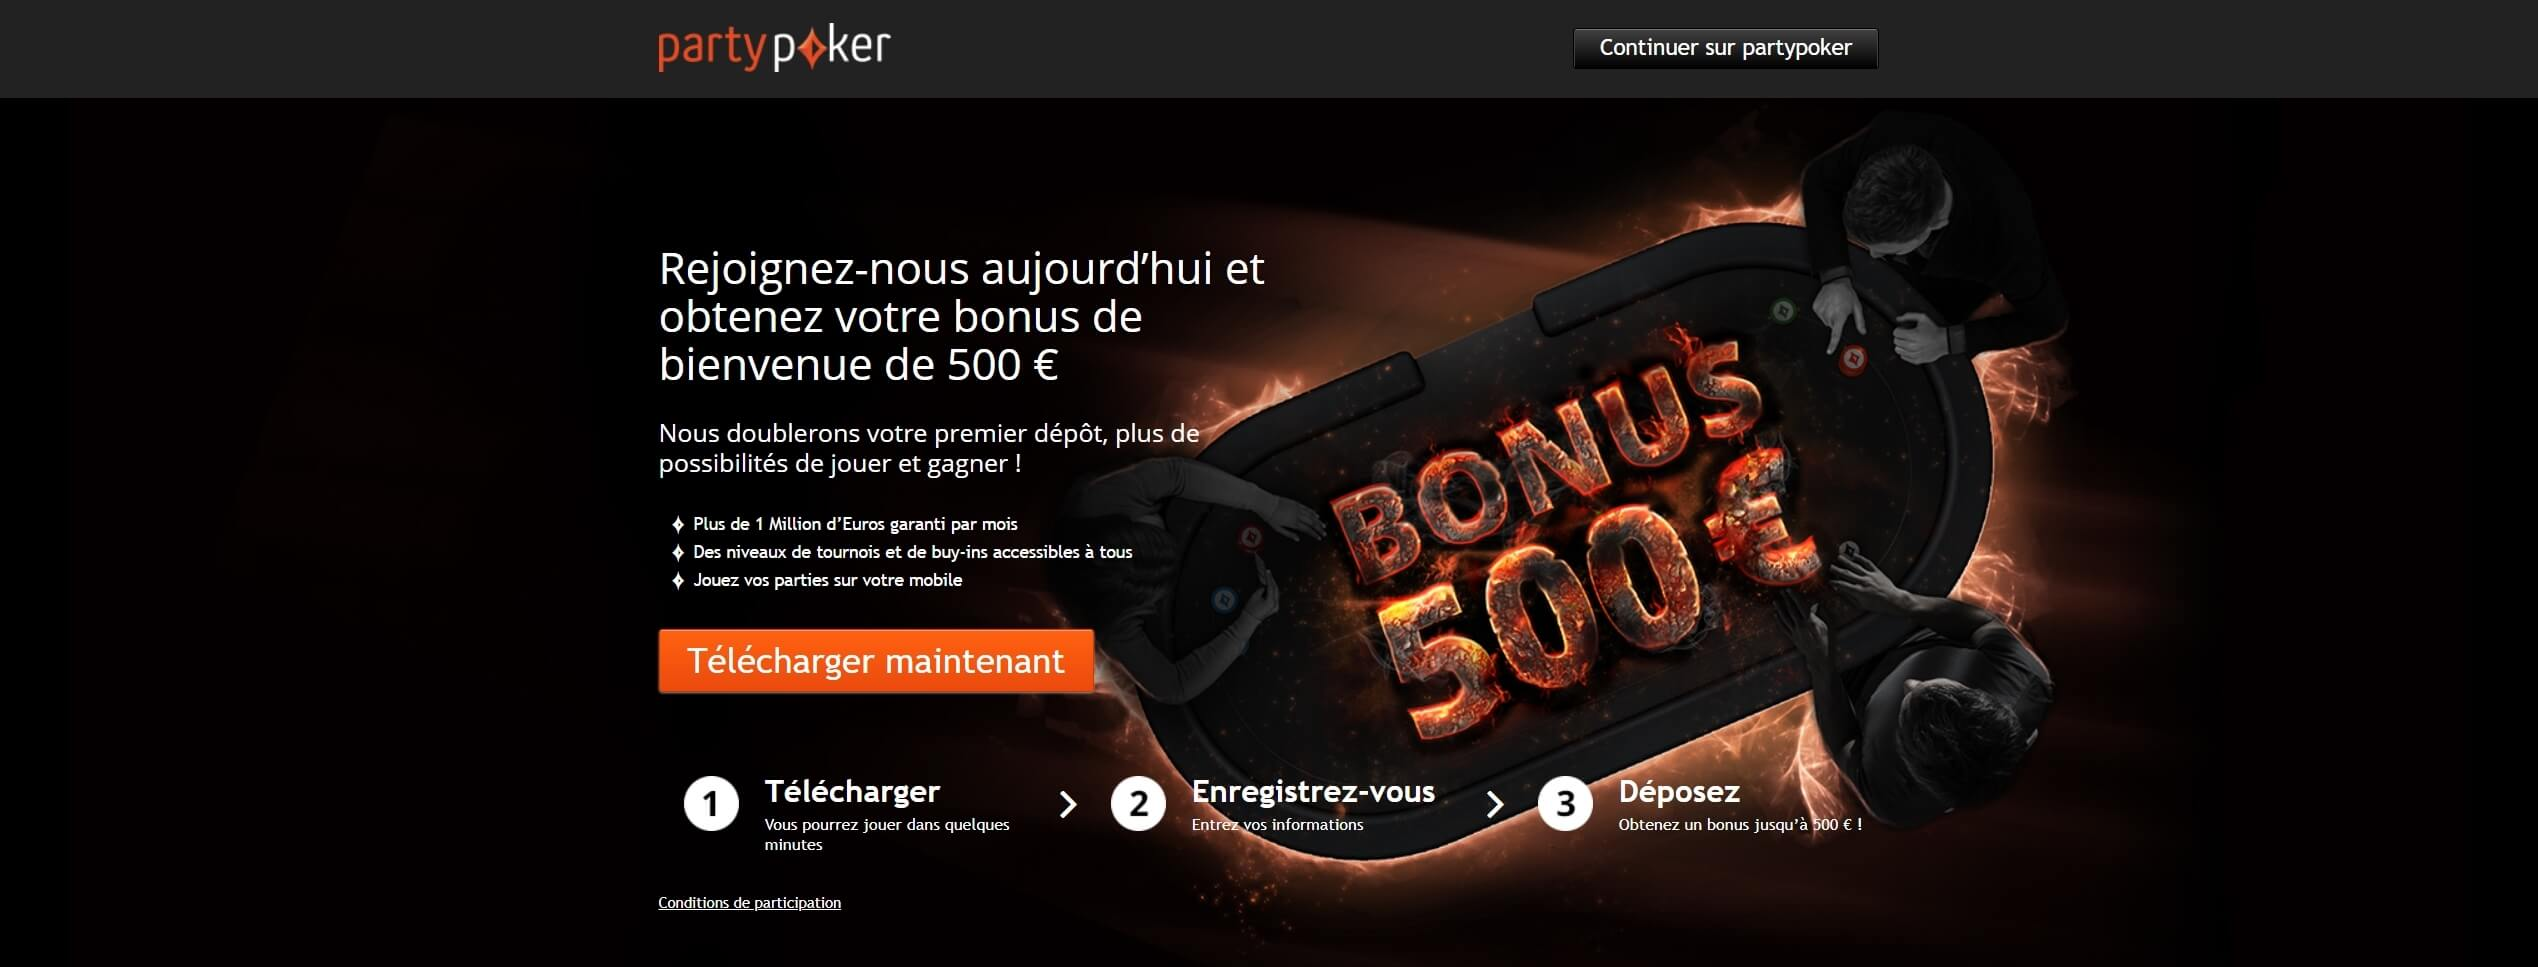 Partypoker.fr-review-step-1